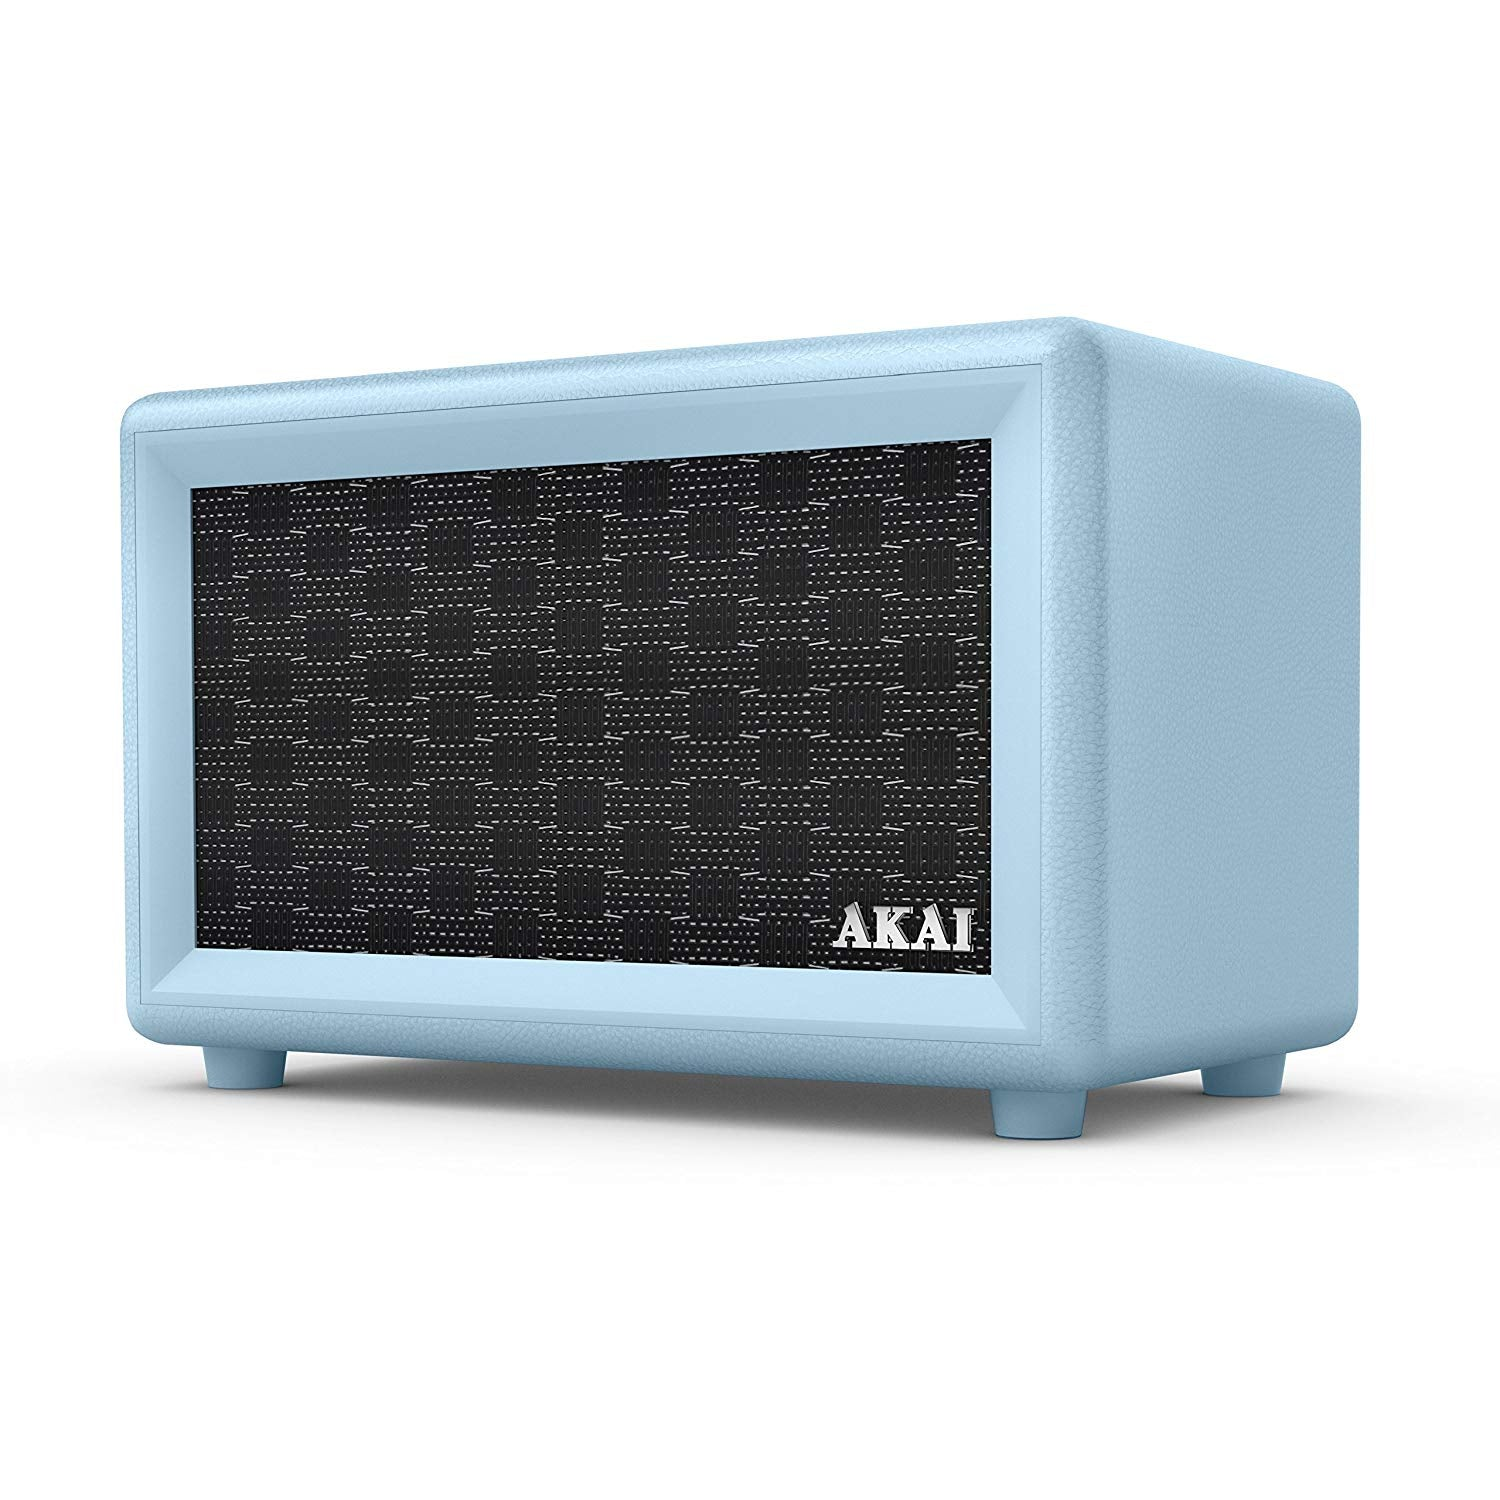 AKAI RETRO DESIGN BLUETOOTH SPEAKER WITH BUILT-IN RECHARGEABLE BATTERY: BLUE [TECH & TURNTABLES] GOLDEN DISCS